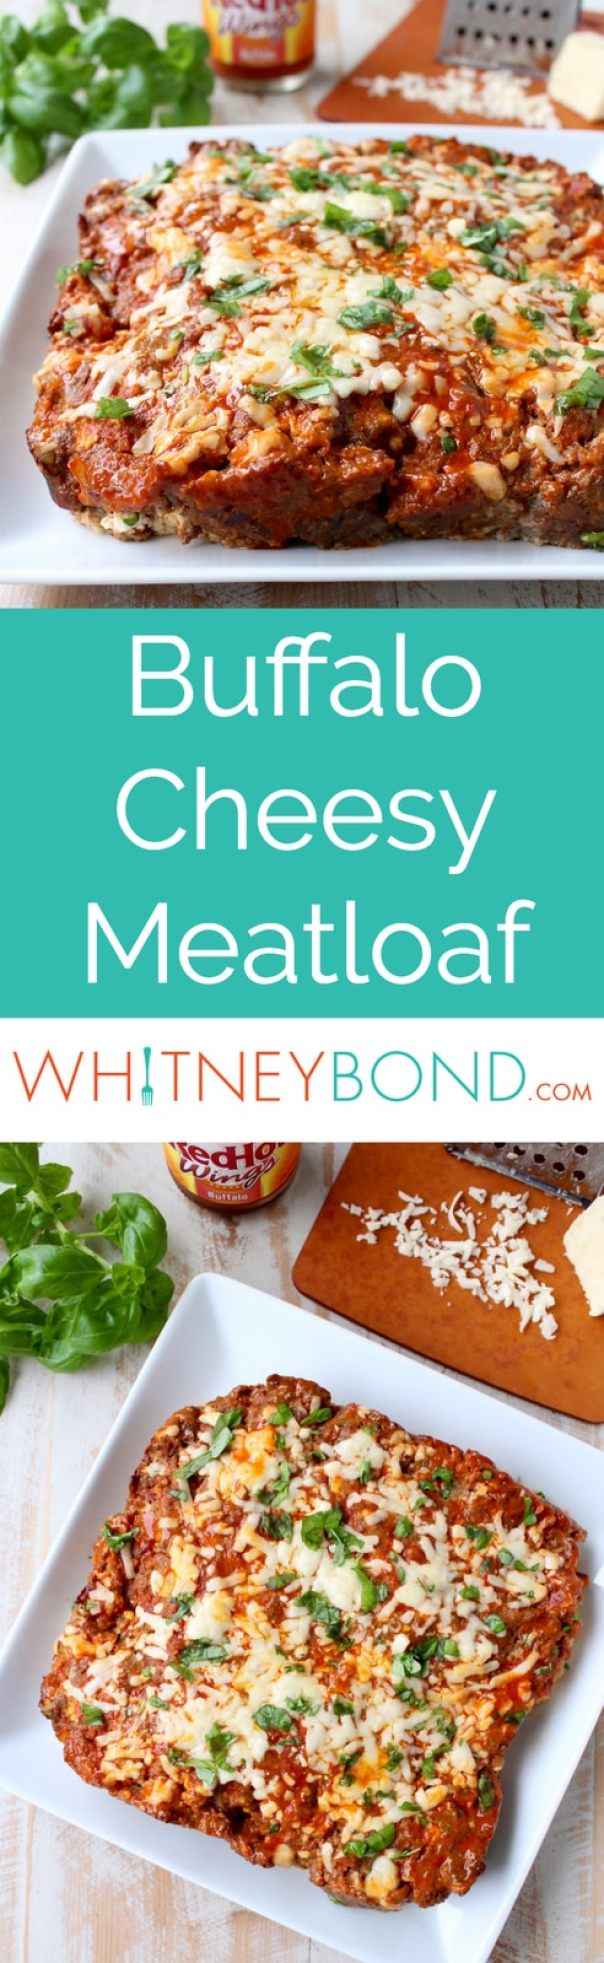 Buffalo sauce, ground beef, pork sausage and two cheeses are combined in this delicious, easy Buffalo Cheesy Meatloaf recipe!